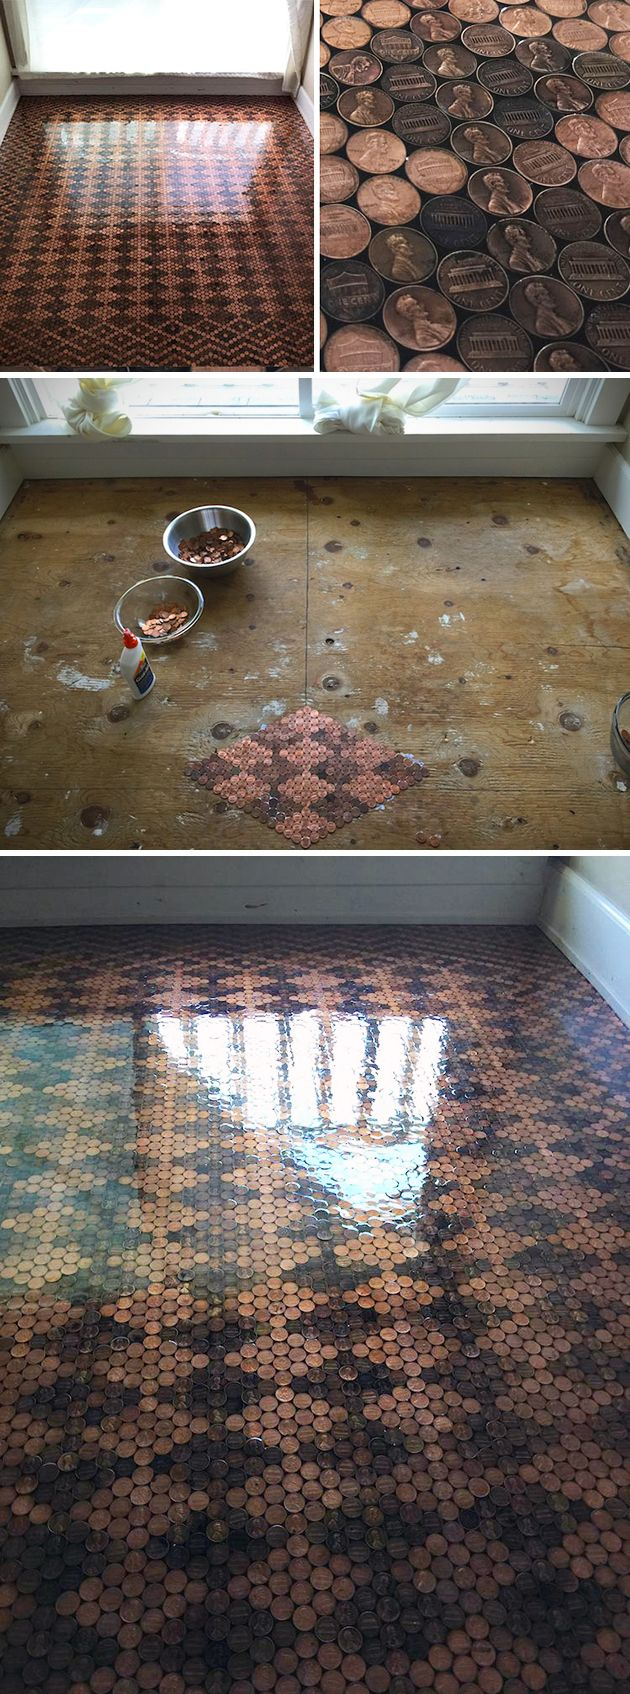 Wondering what to do with that jar of pennies collecting dust in the back of your cupboard? Well, we've finally found a good use for them thanks to Tonya Tooners. The Portland, Oregon-based DIY enthusiast used over 13,000 coins to make a beautiful patterned floor in her house, and as you can see, it's worth every penny!